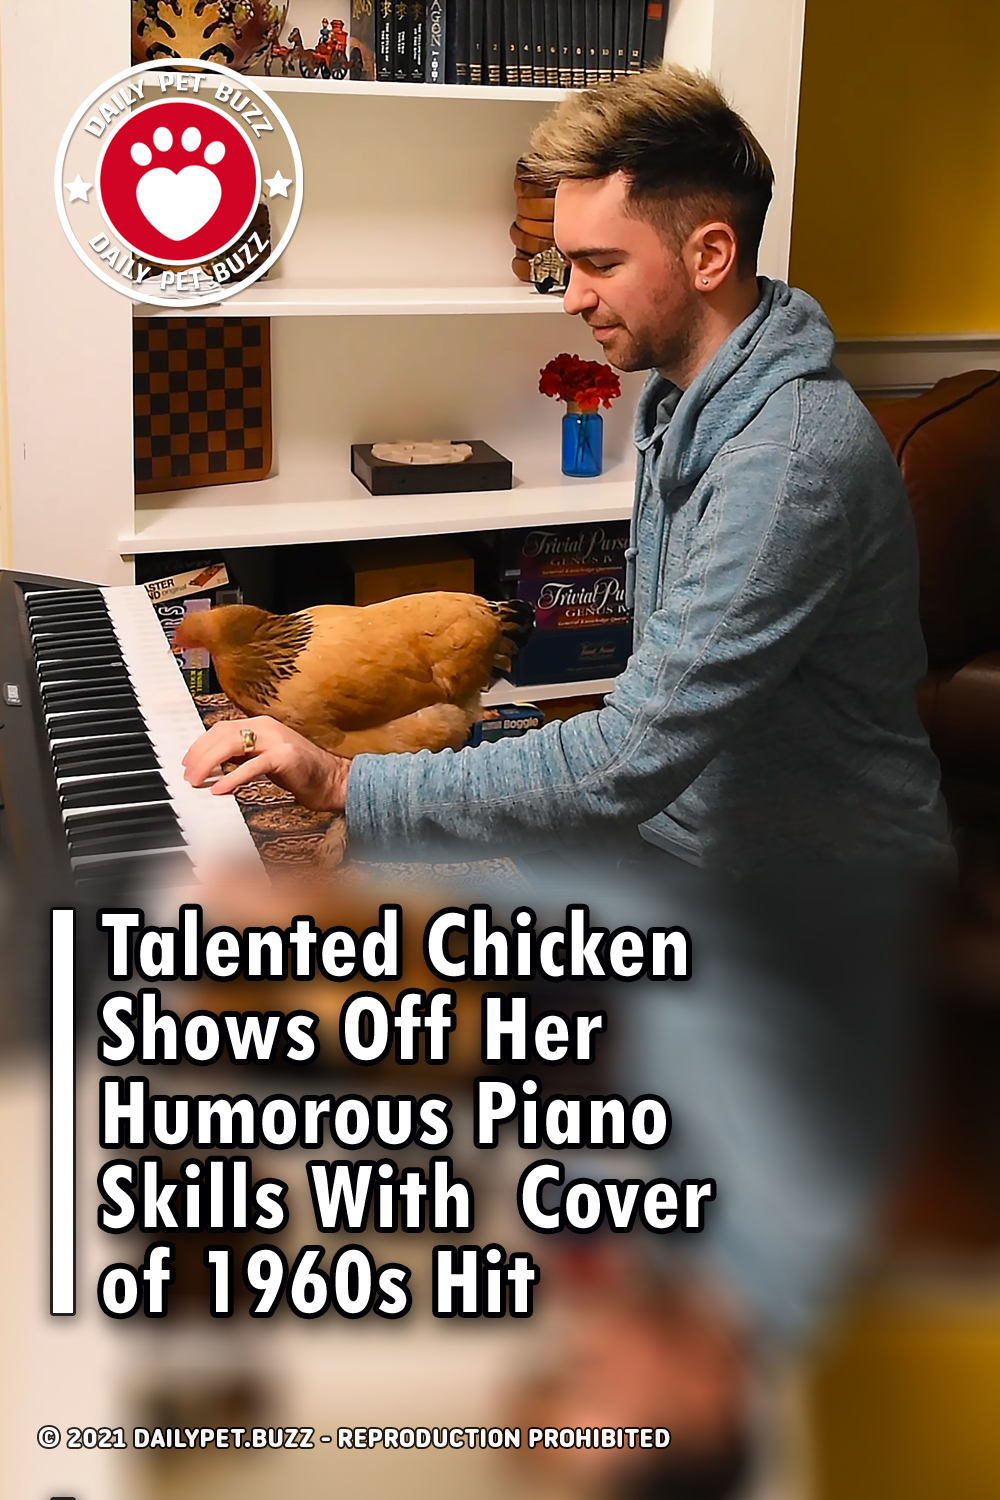 Talented Chicken Shows Off Her Humorous Piano Skills With  Cover of 1960s Hit